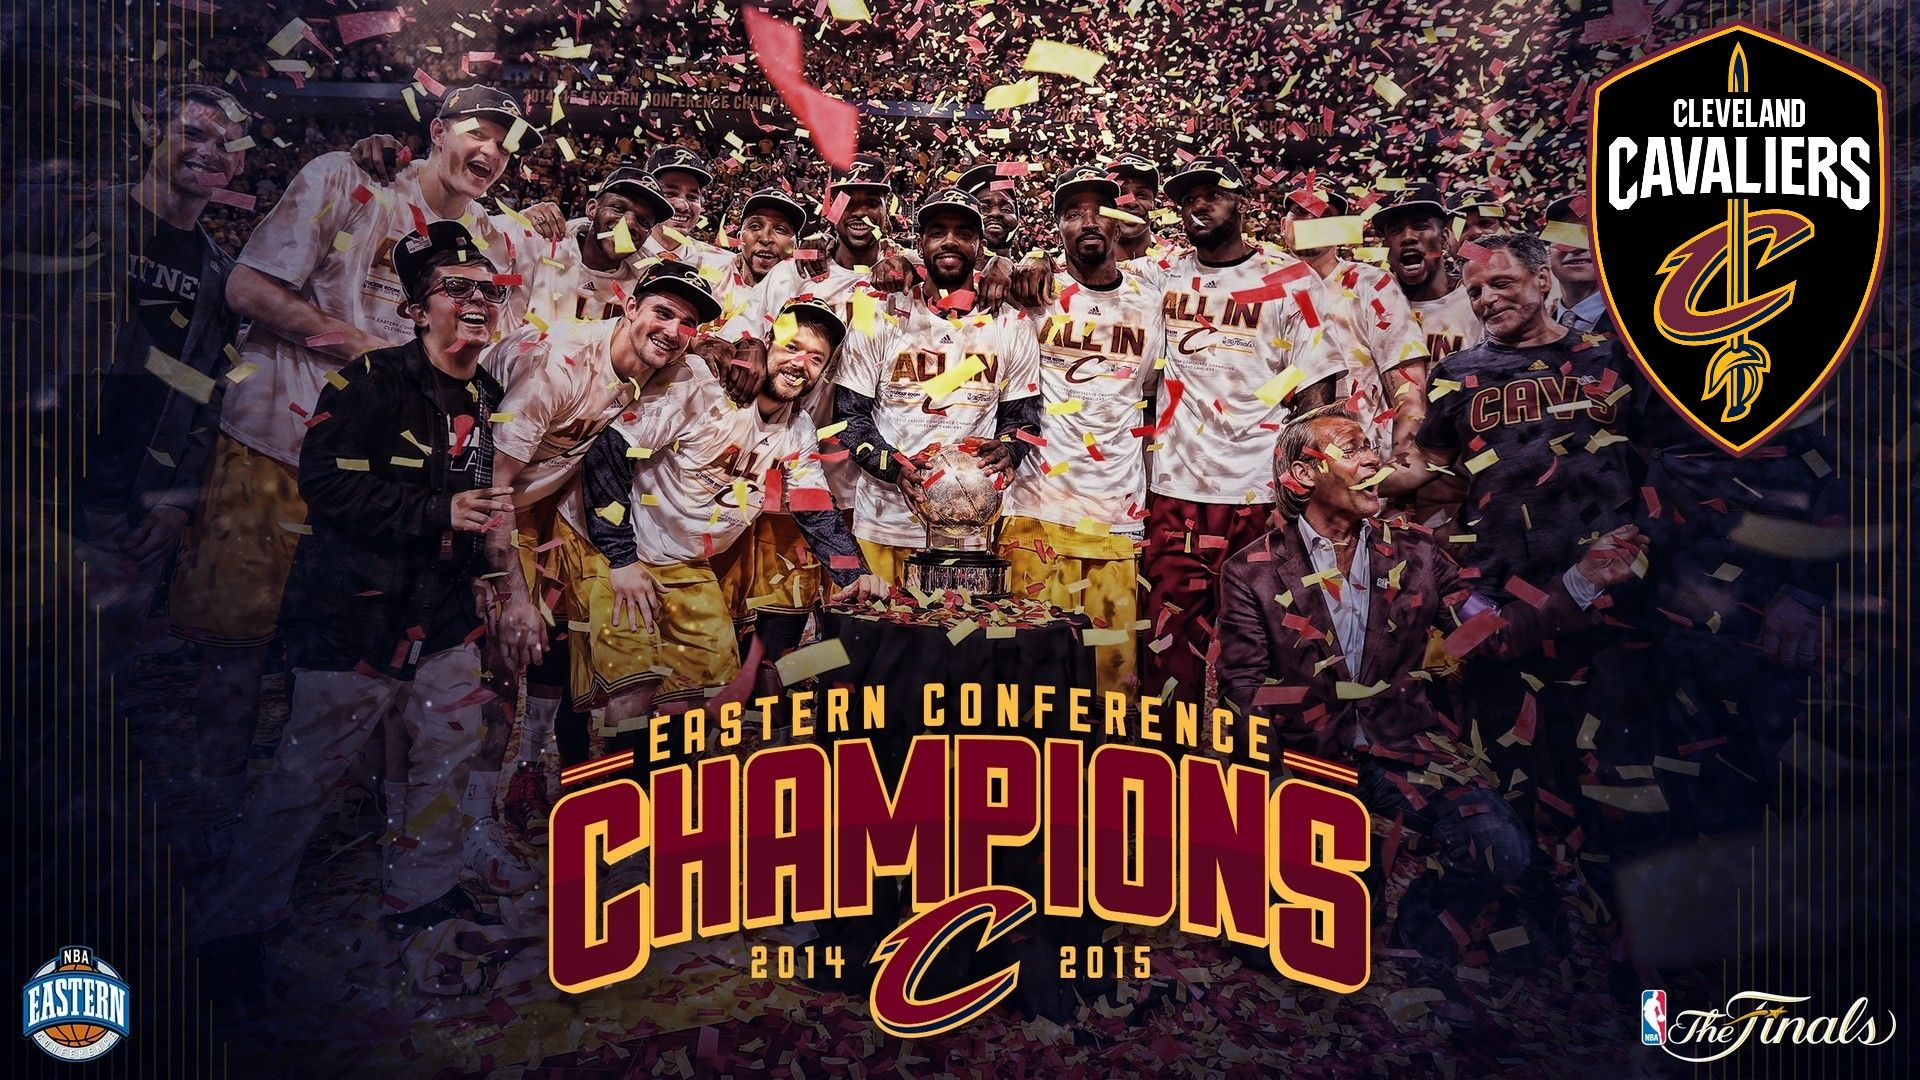 Cleveland Cavaliers Nba For Pc Wallpaper 2021 Basketball Wallpaper Lebron James Cleveland Cavaliers Cavaliers Nba Cleveland Cavs